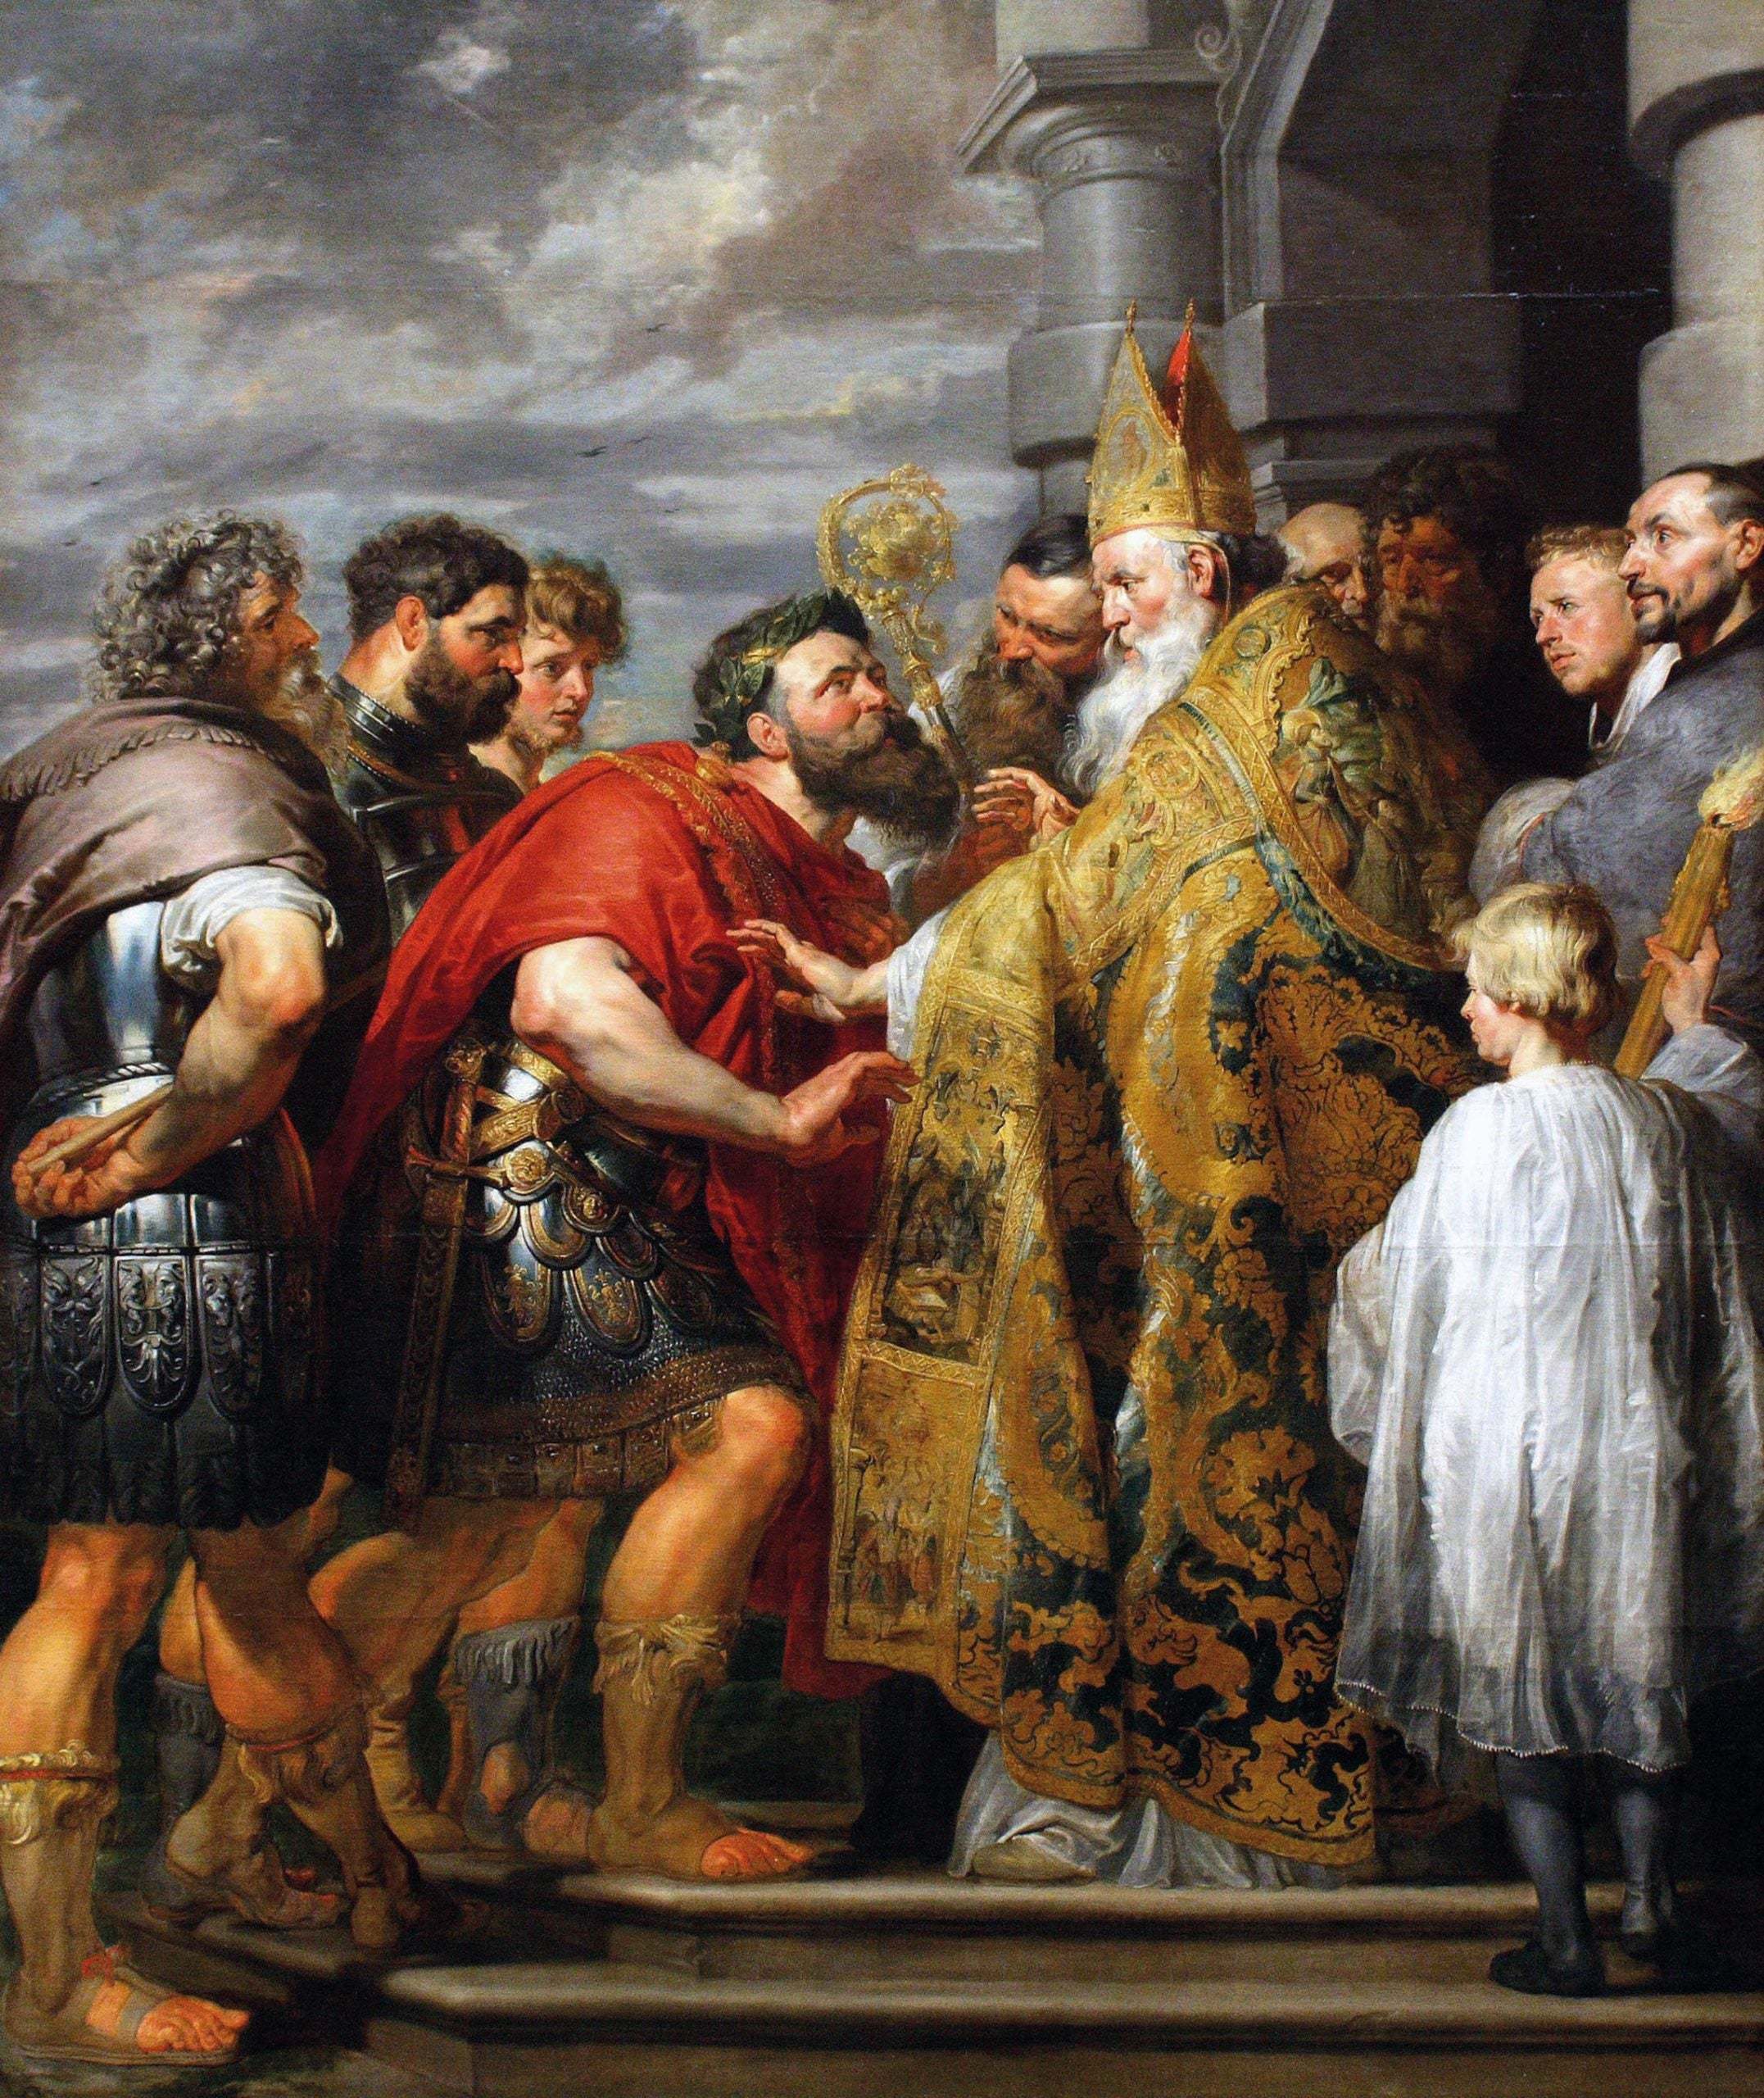 The Darkening Age: how Christians won the brutal culture war against Rome